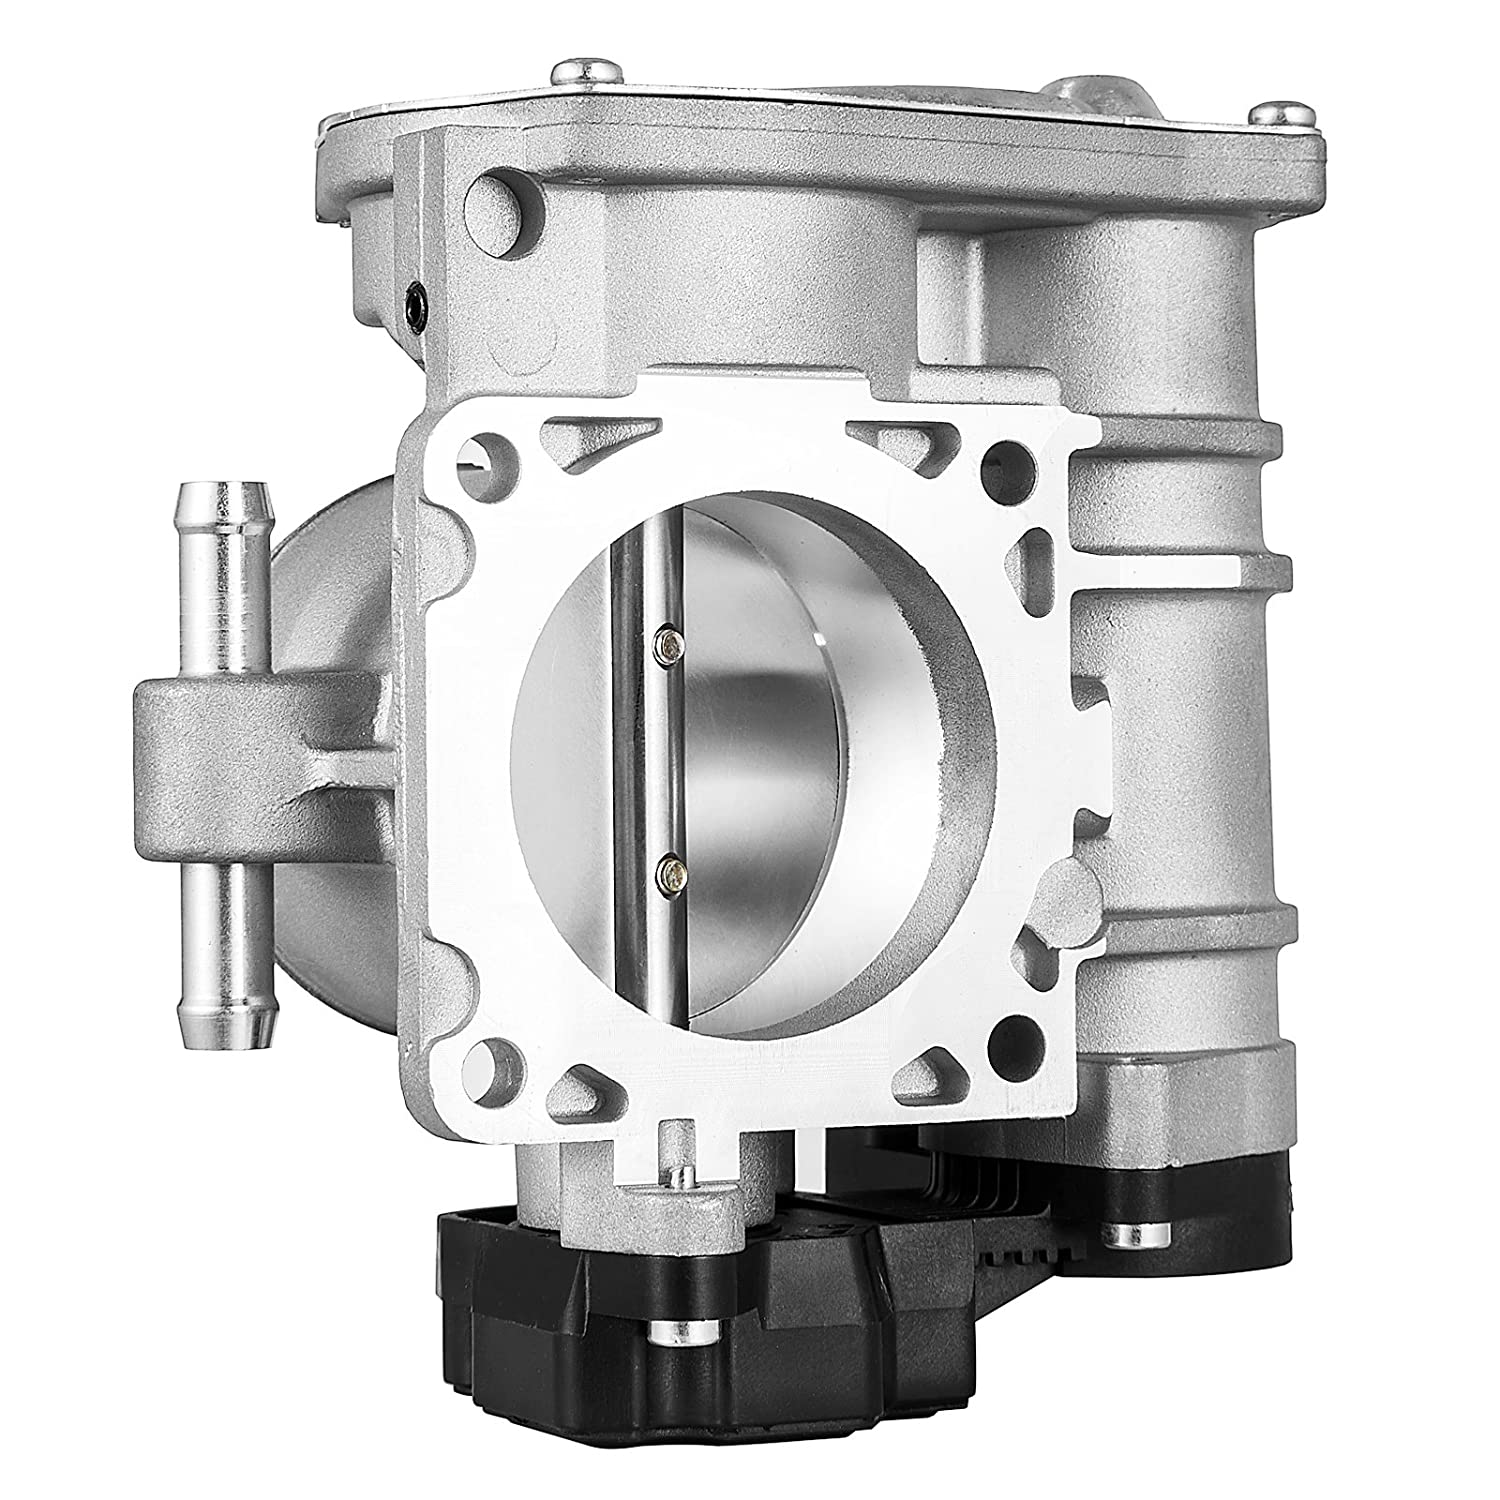 Bestauto Throttle Body Multiple Choices For Throttle Body Assembly Suzuki Forenza